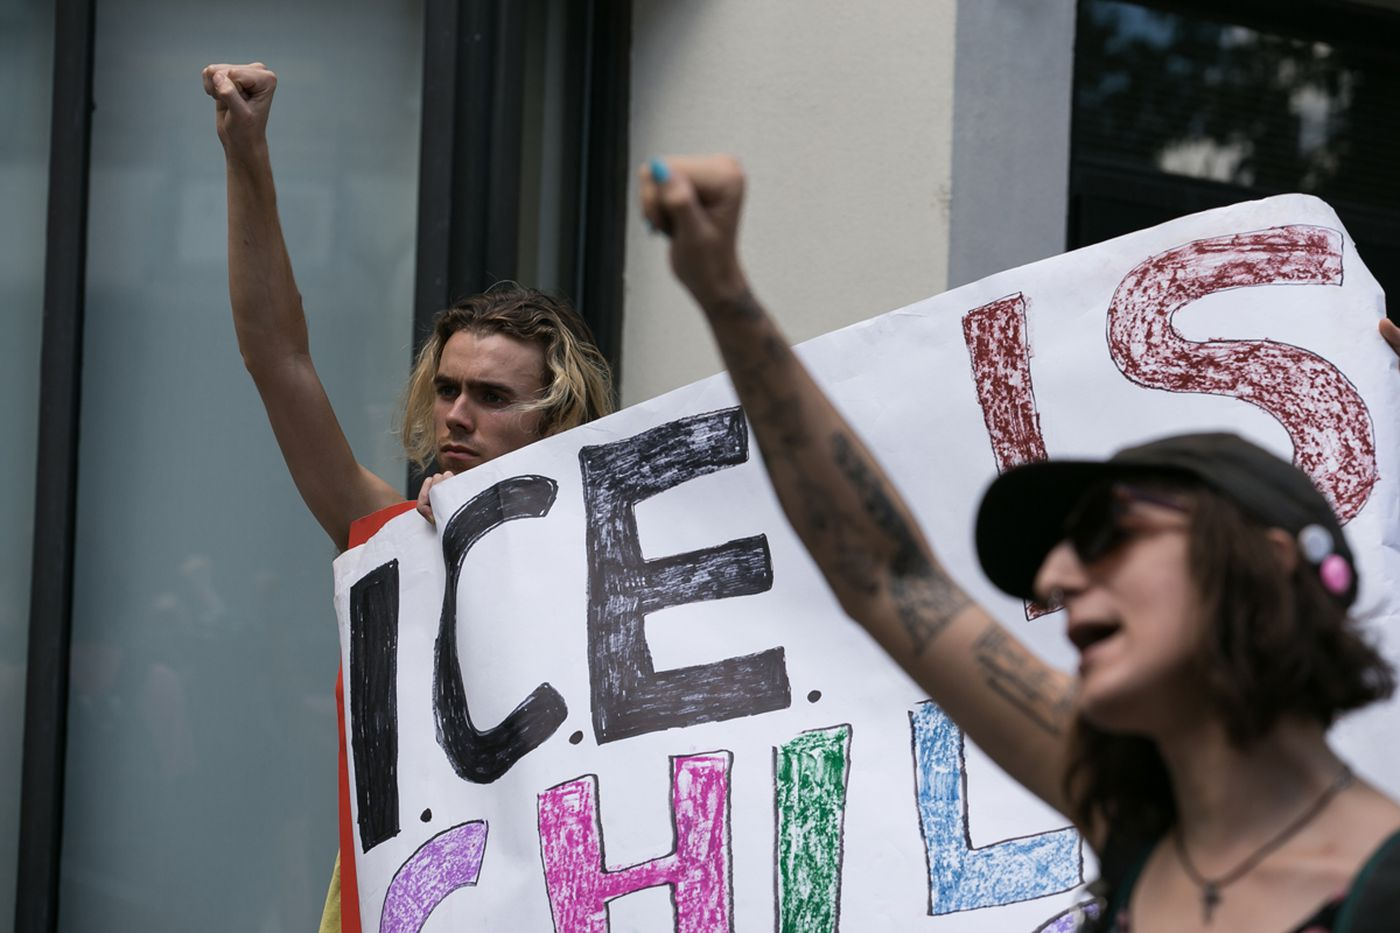 occupy ice protests what to know about demonstrations in portland